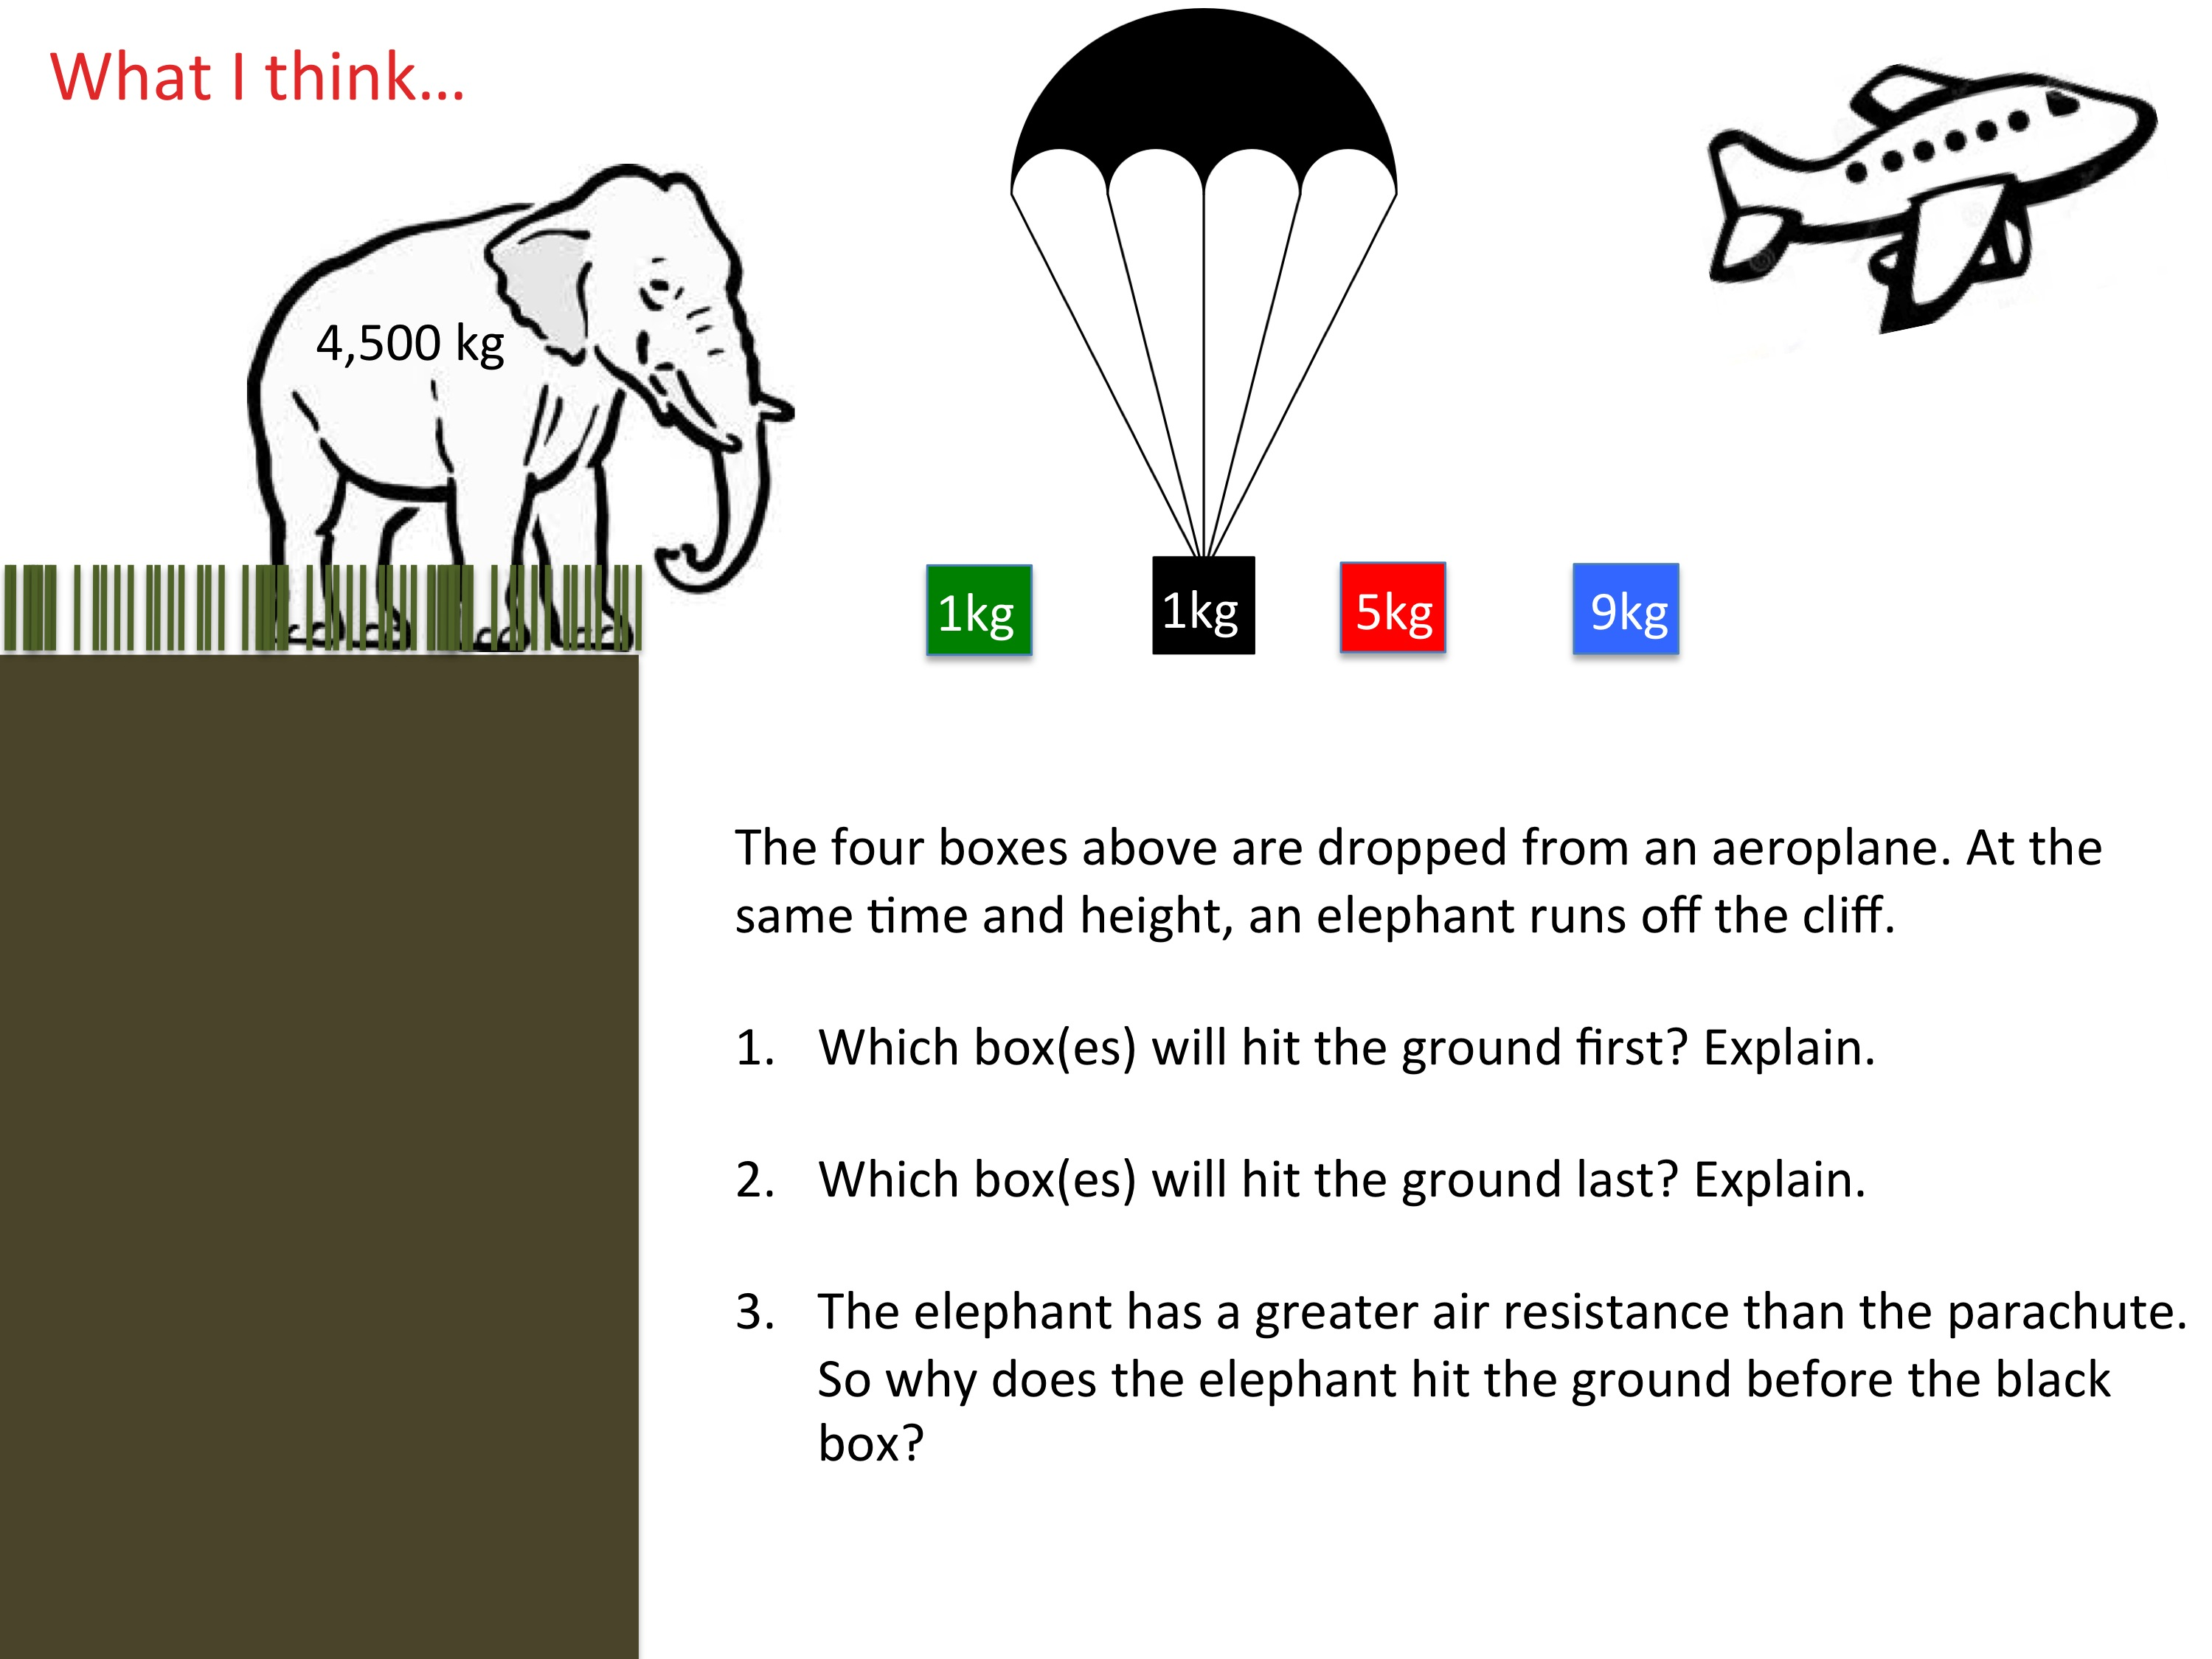 Elephants In Free Fall >> Weight Gravity And Free Fall The Science Teacher